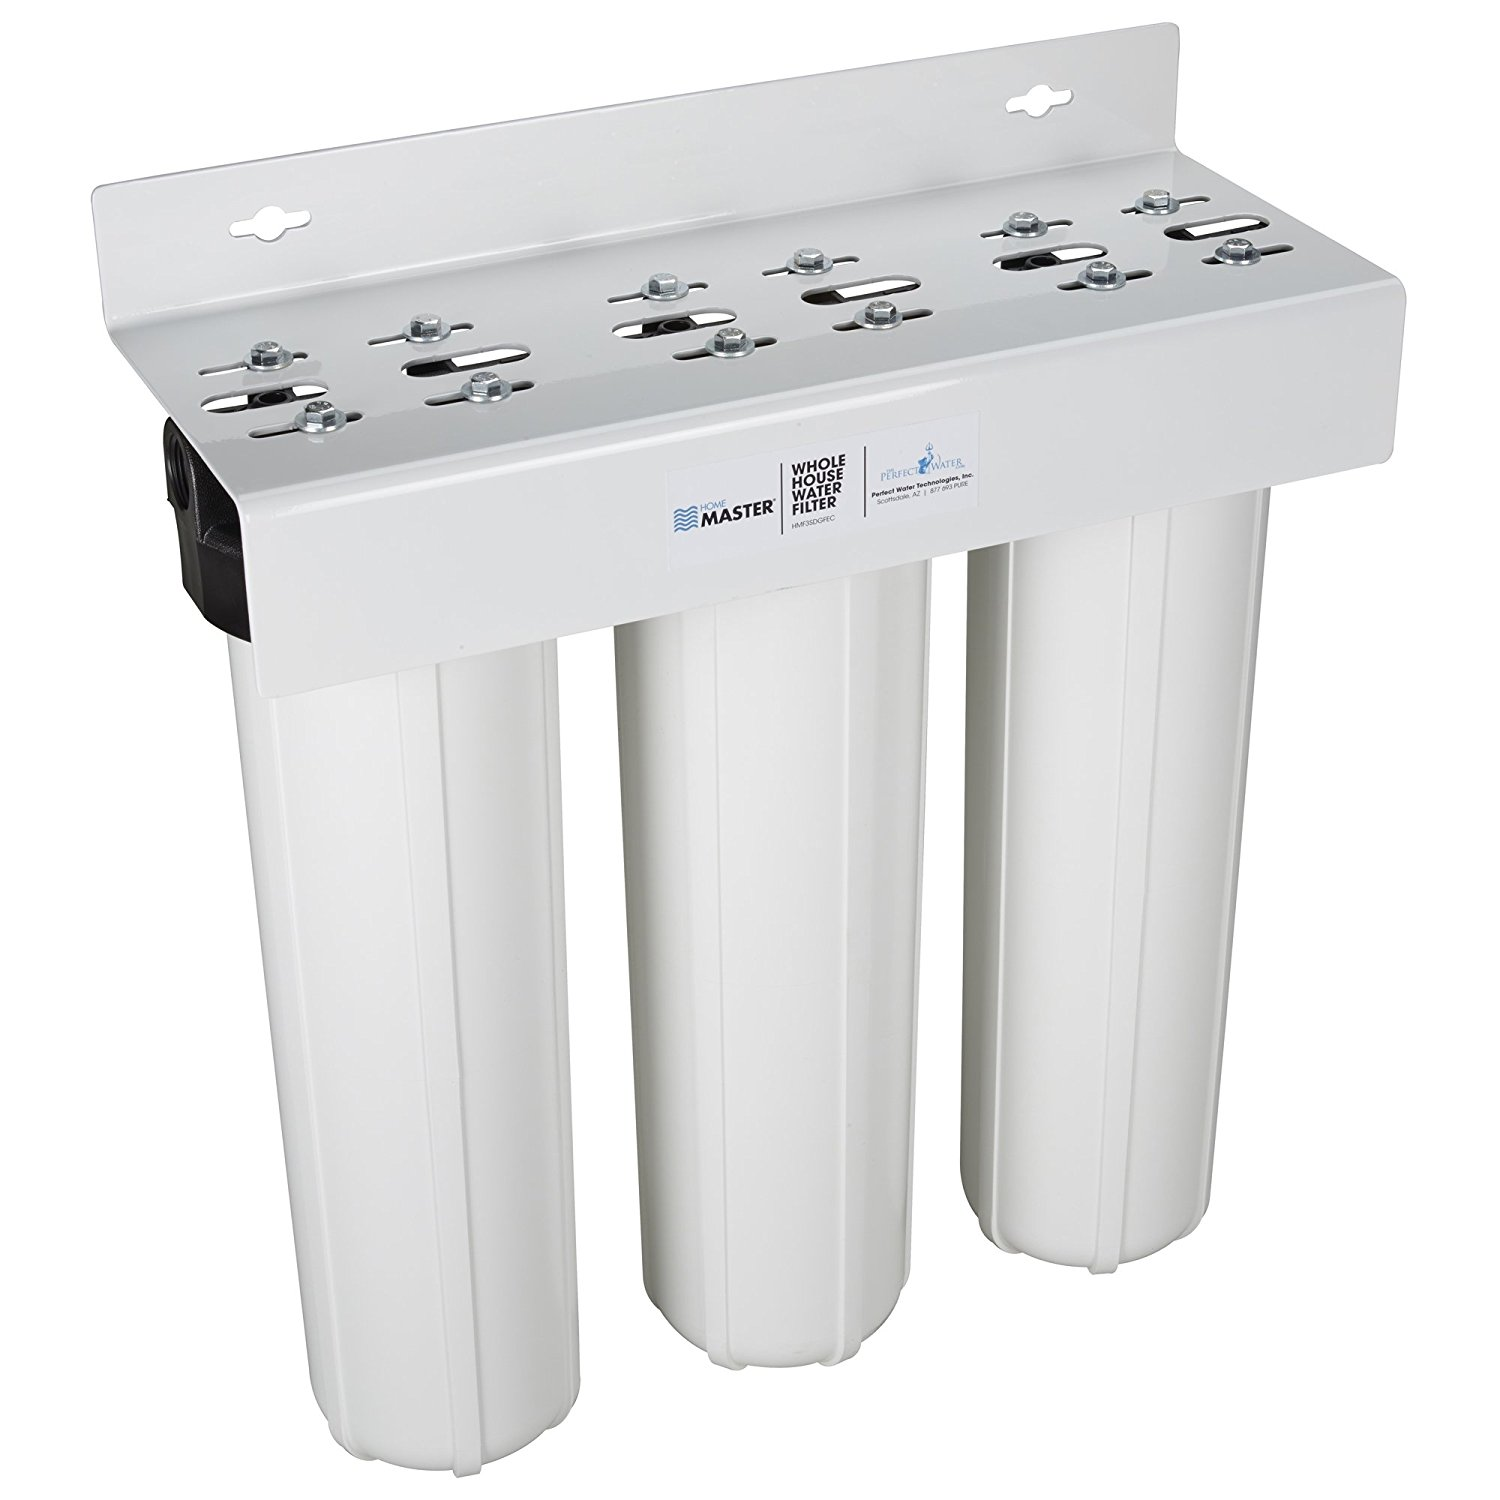 Home Master HMF3SDGFEC Whole House 3-Stage Water Filter with Fine Sediment, Iron, and Carbon